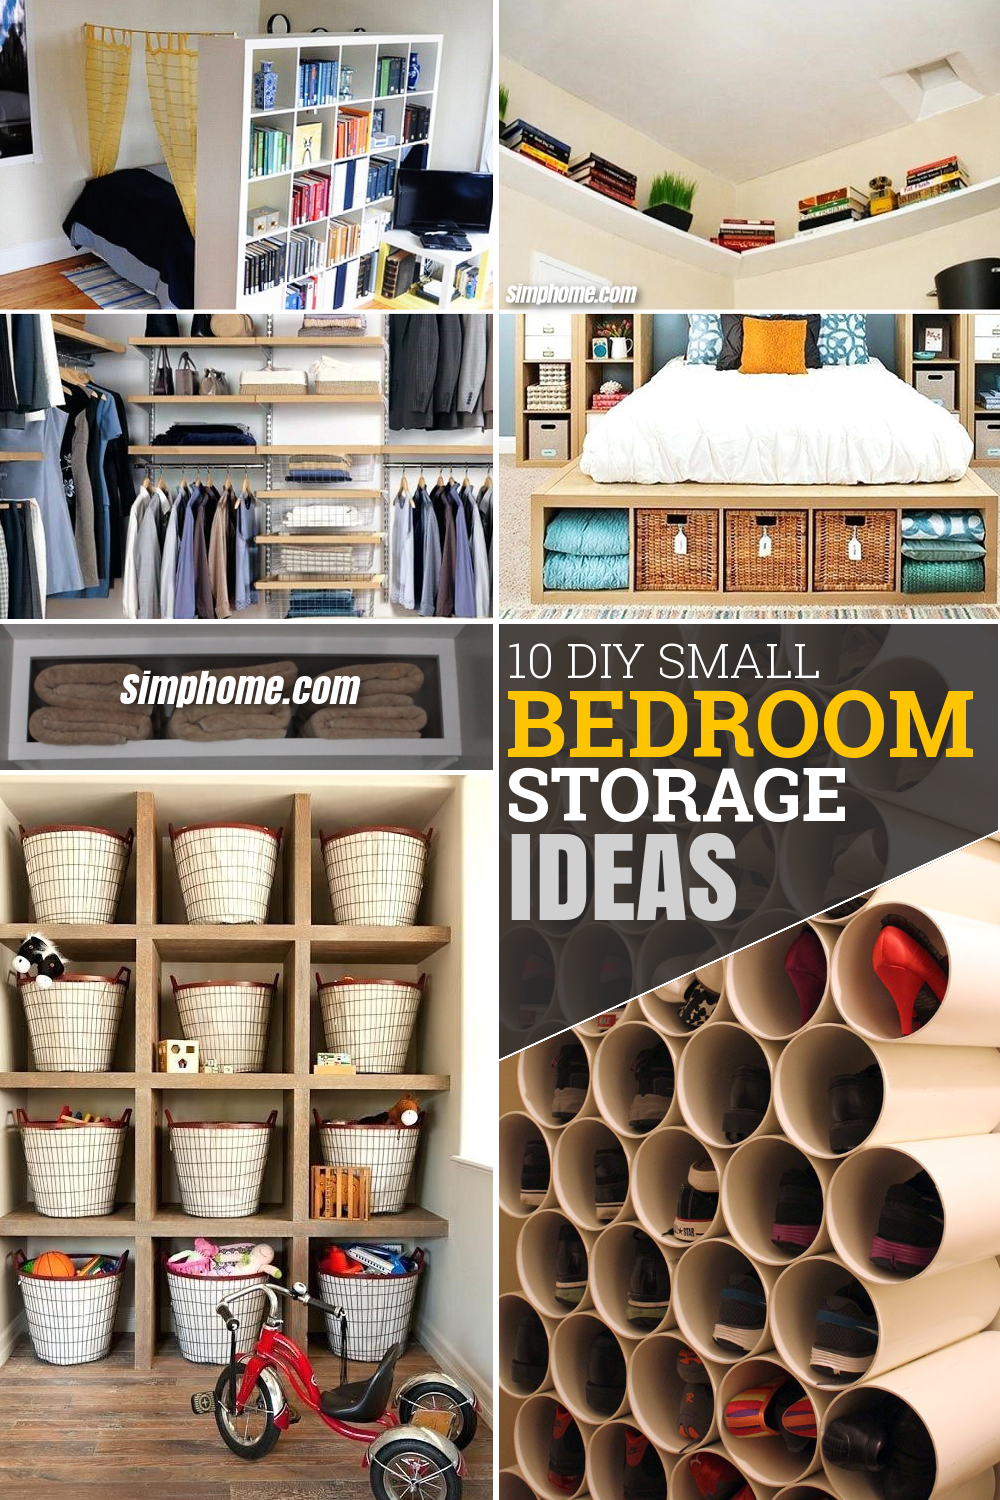 10 DIY Small Bedroom Storage Ideas - Simphome